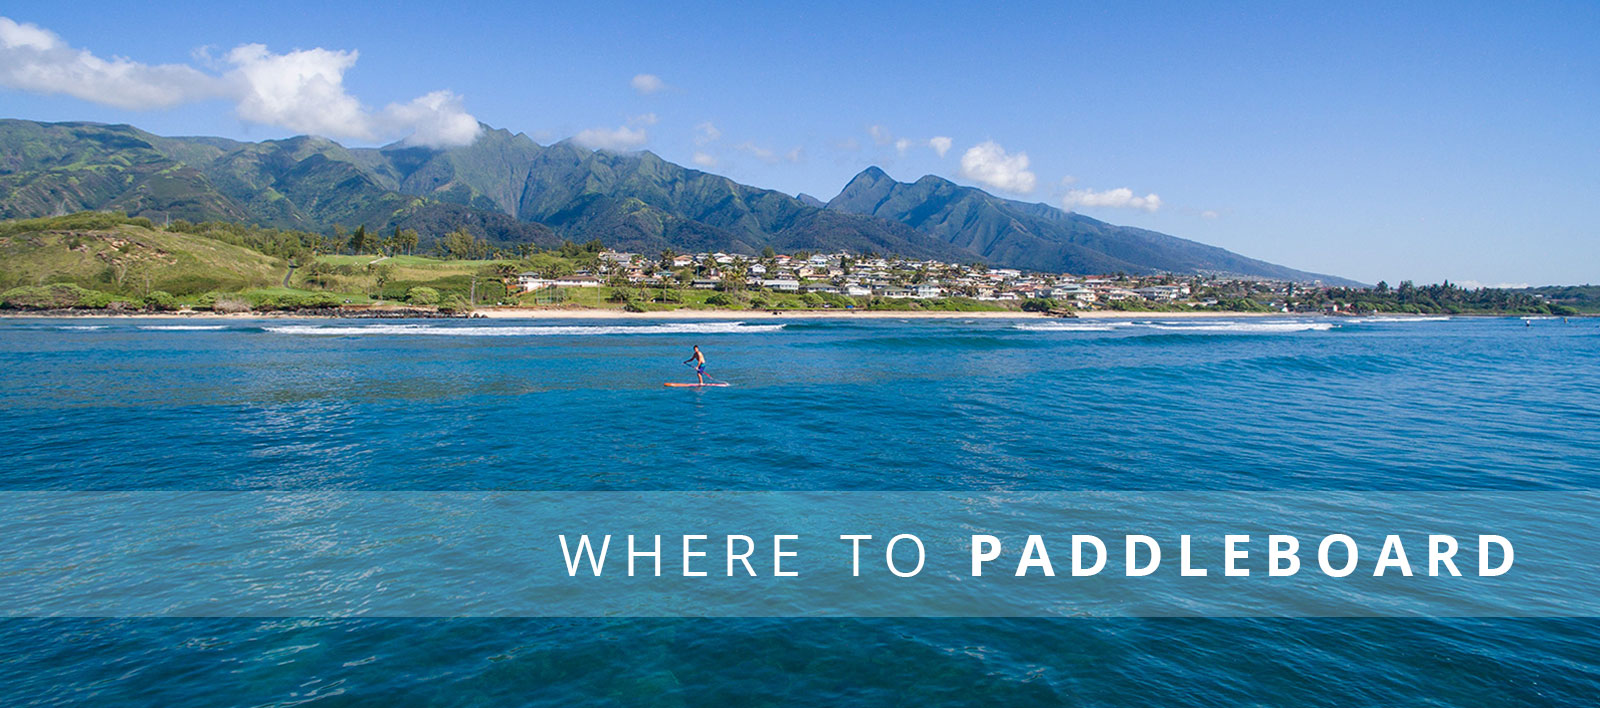 Where to Paddleboard